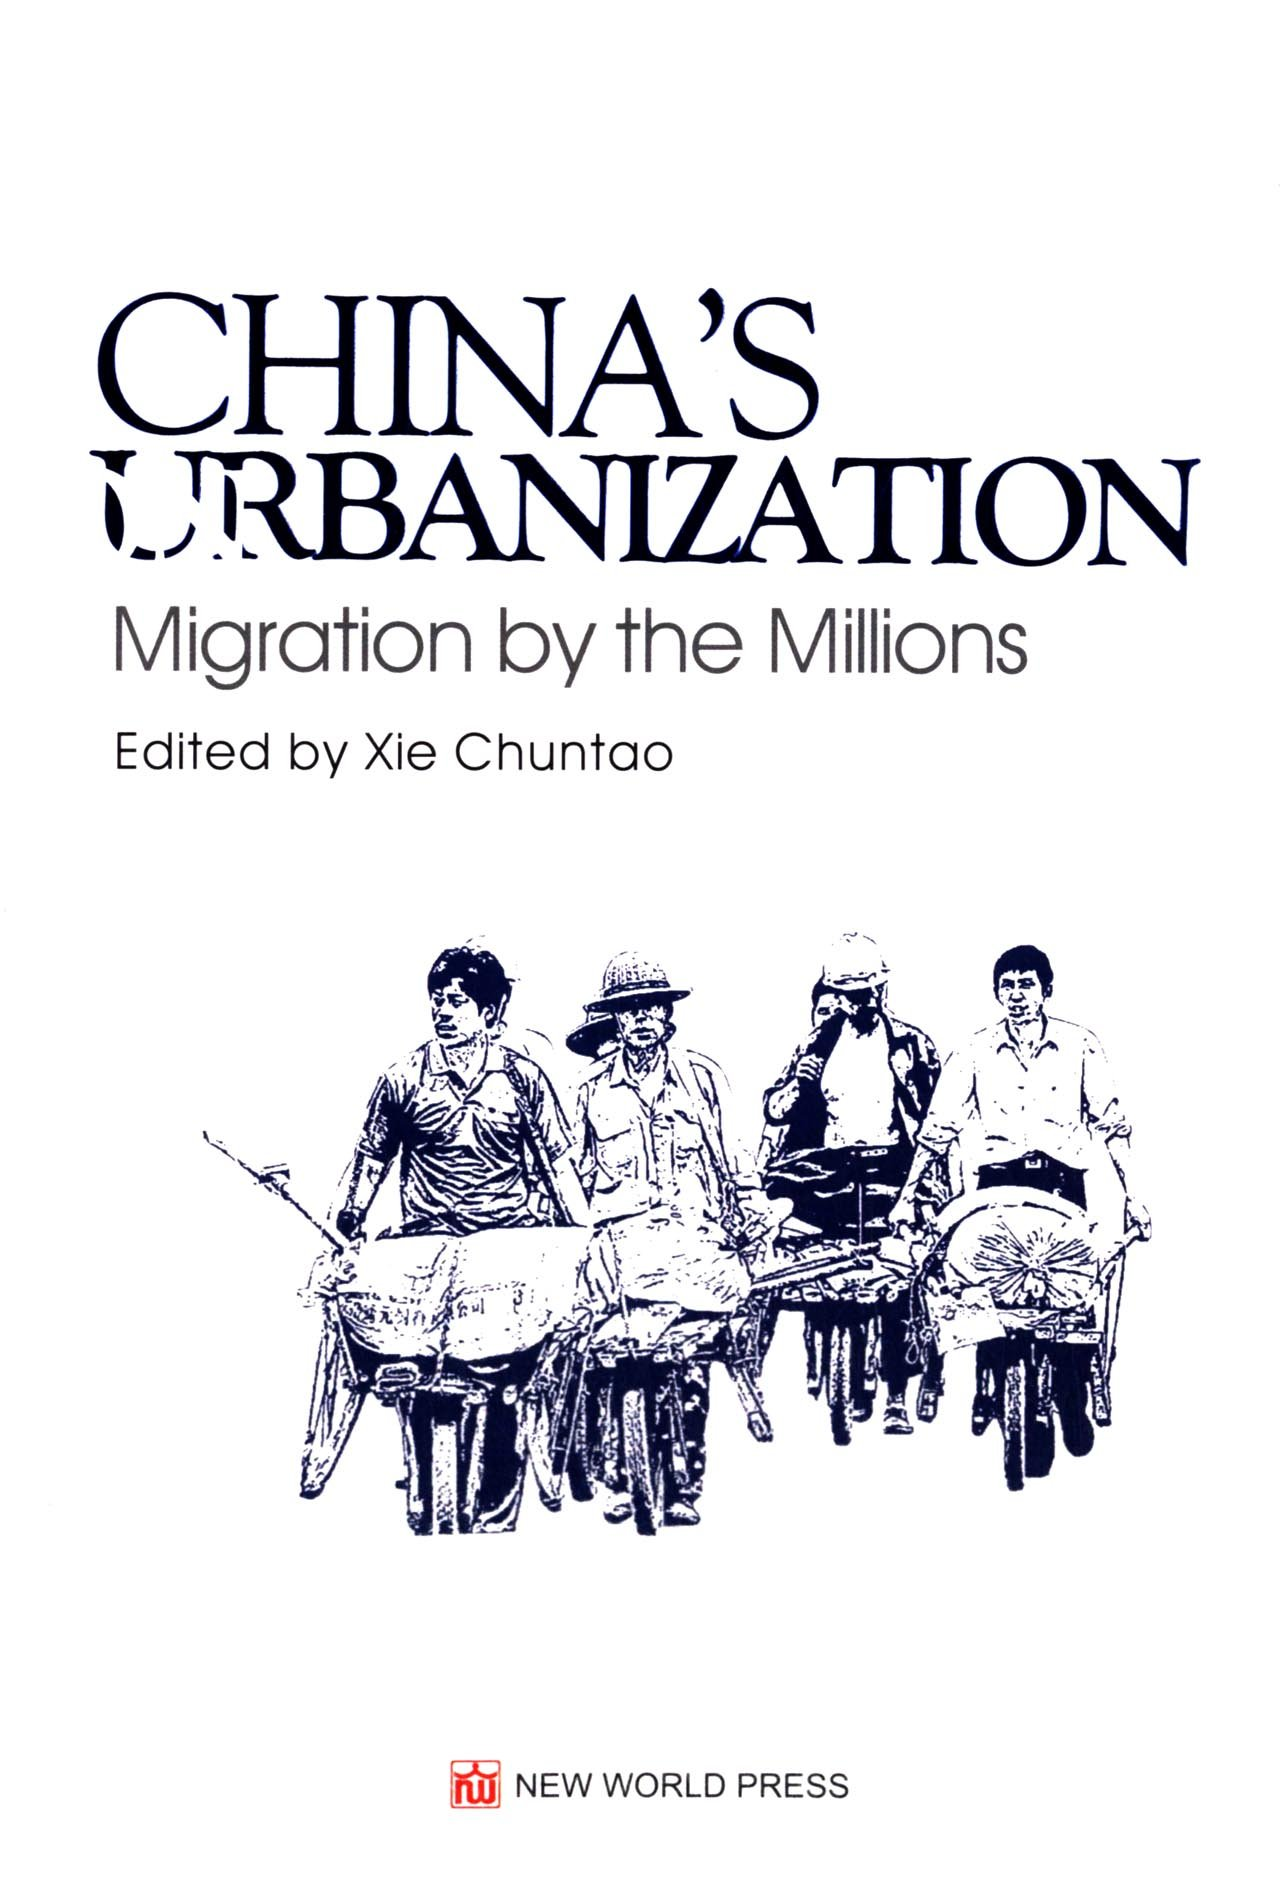 China's Urbanization - Migration by the Millions